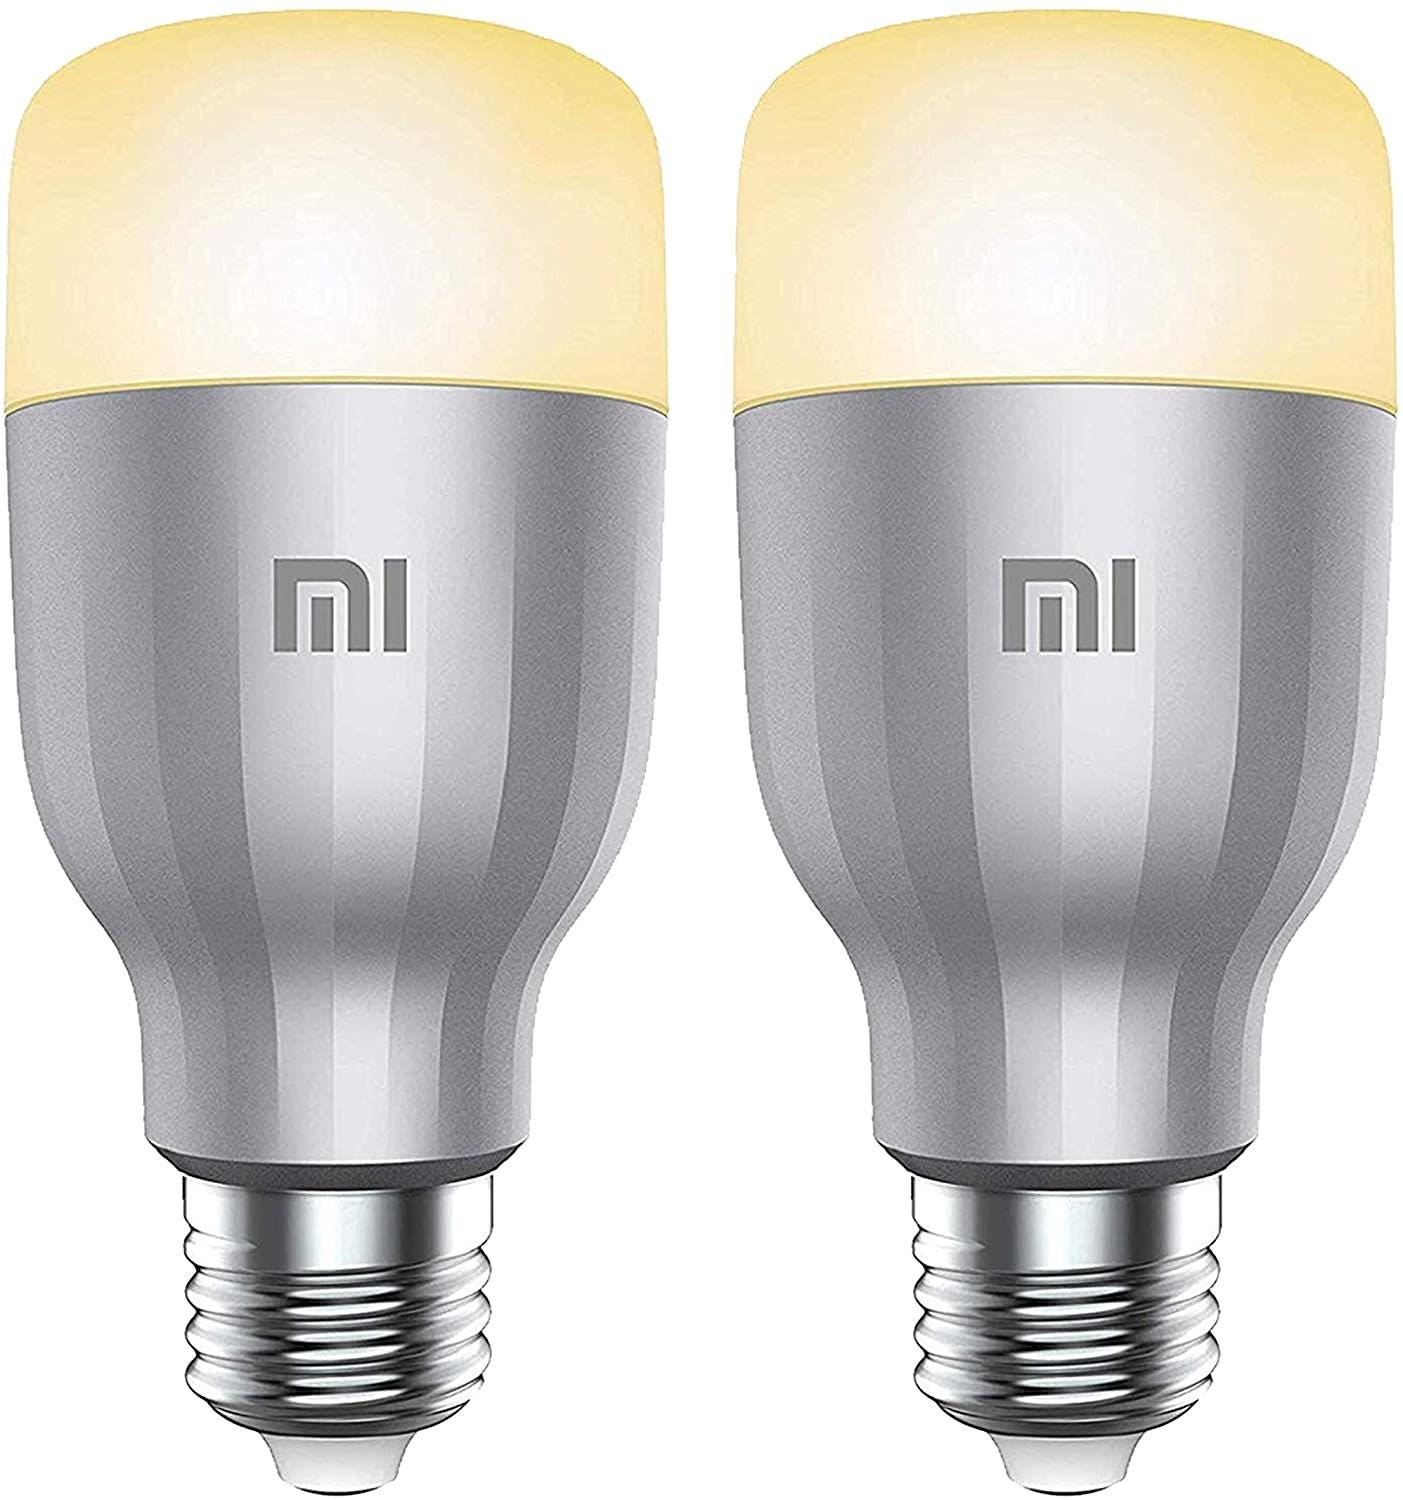 Xiaomi Mi Multicolour WiFi LED Smart Bulb - E27, 2 Pack